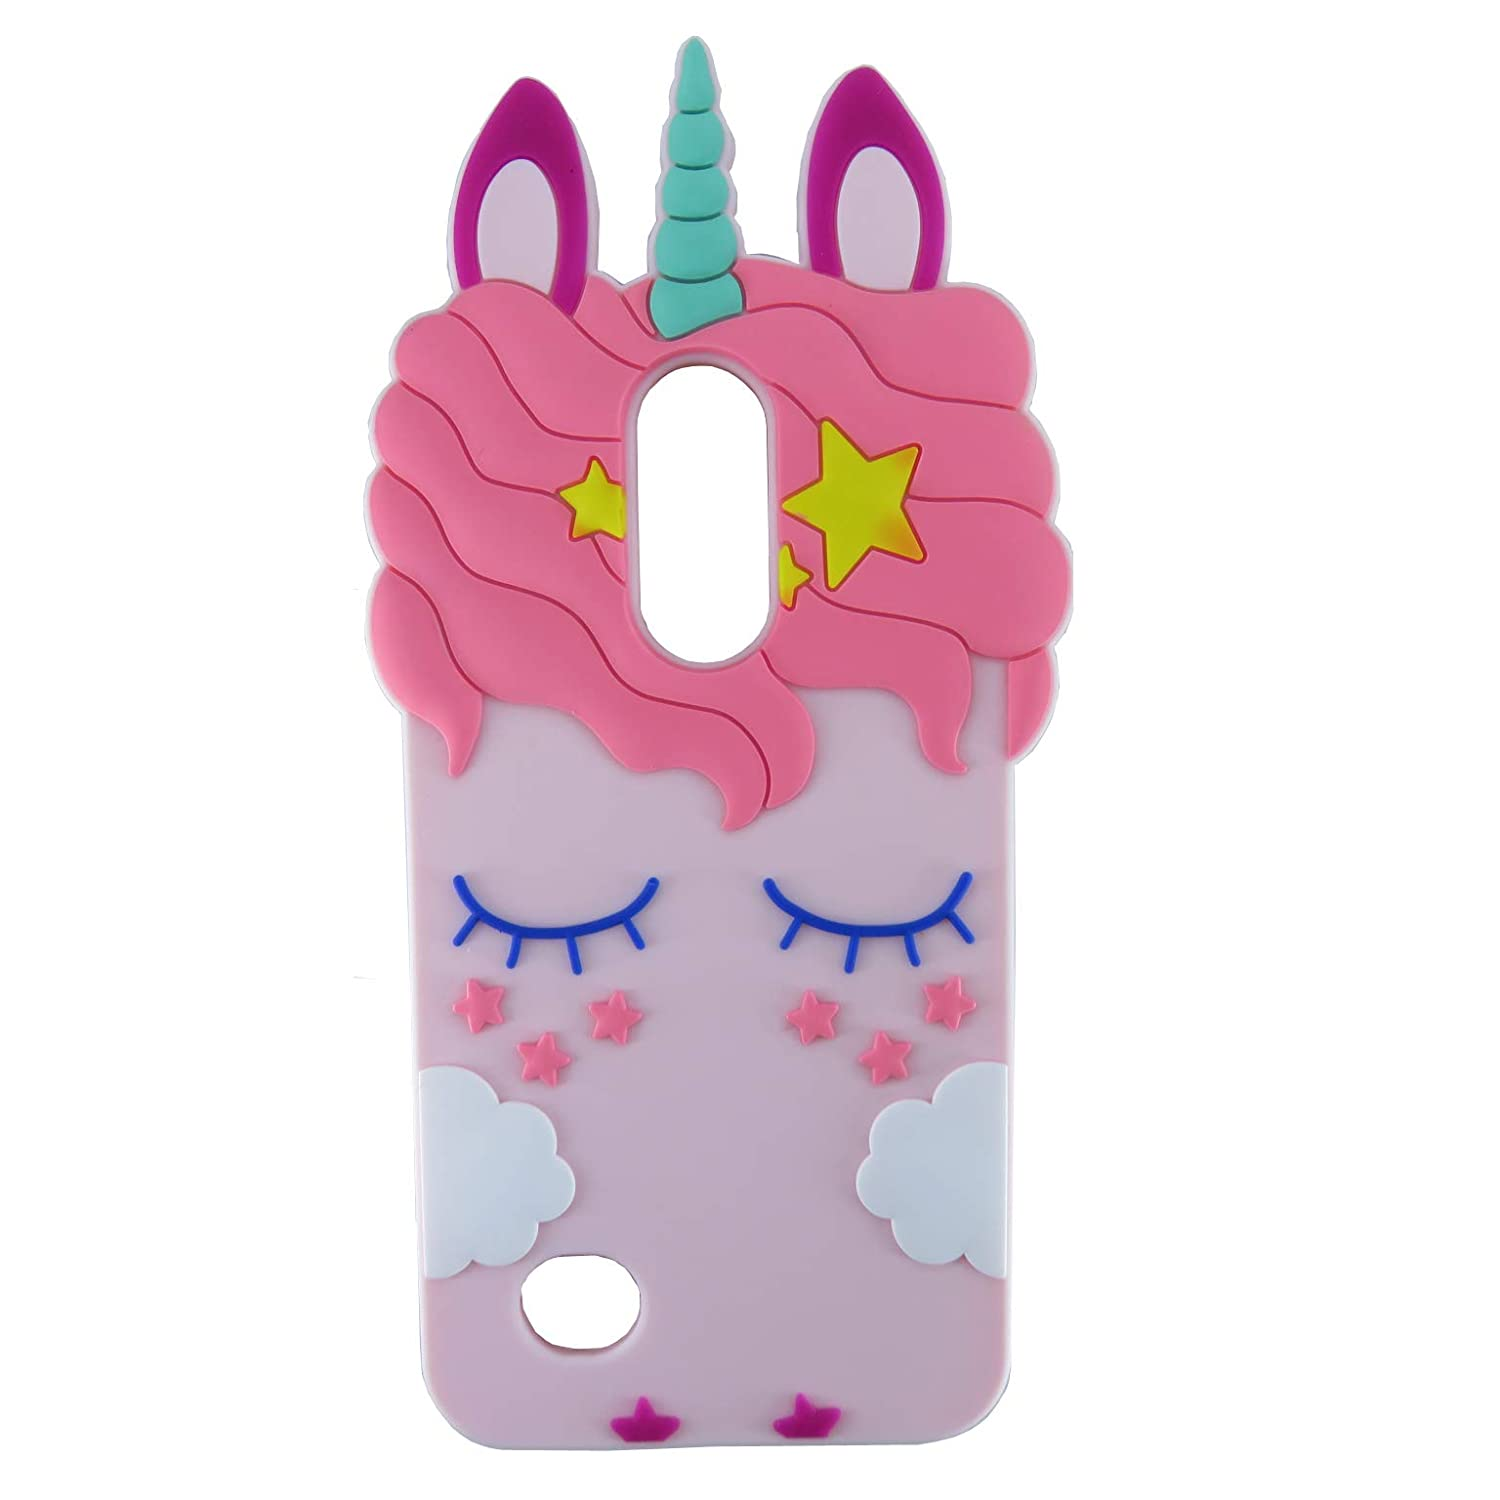 EMF Pink Horse Case for LG Aristo 3/Tribute Empire/Rebel 4 LTE,3D Cartoon Animal Cute Silicone Kawaii Animated Fun Cool Skin Case for Kids Teens Girls for Phoenix 4 3 2/Risio 3 2/Zone 4/K8 2017